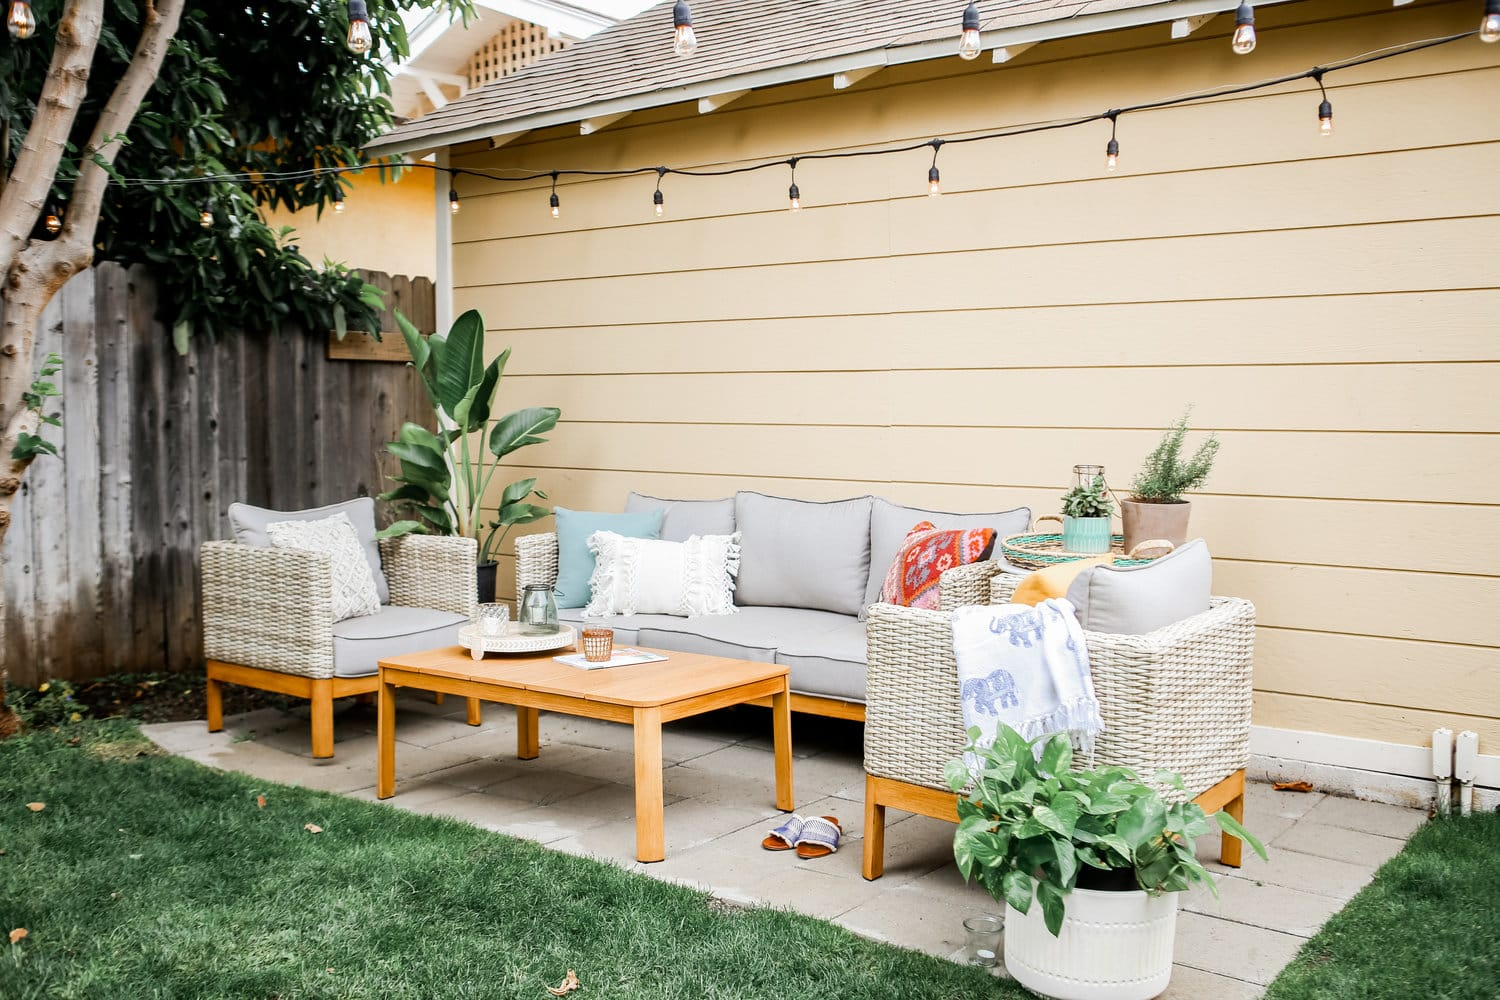 budget-friendly patio